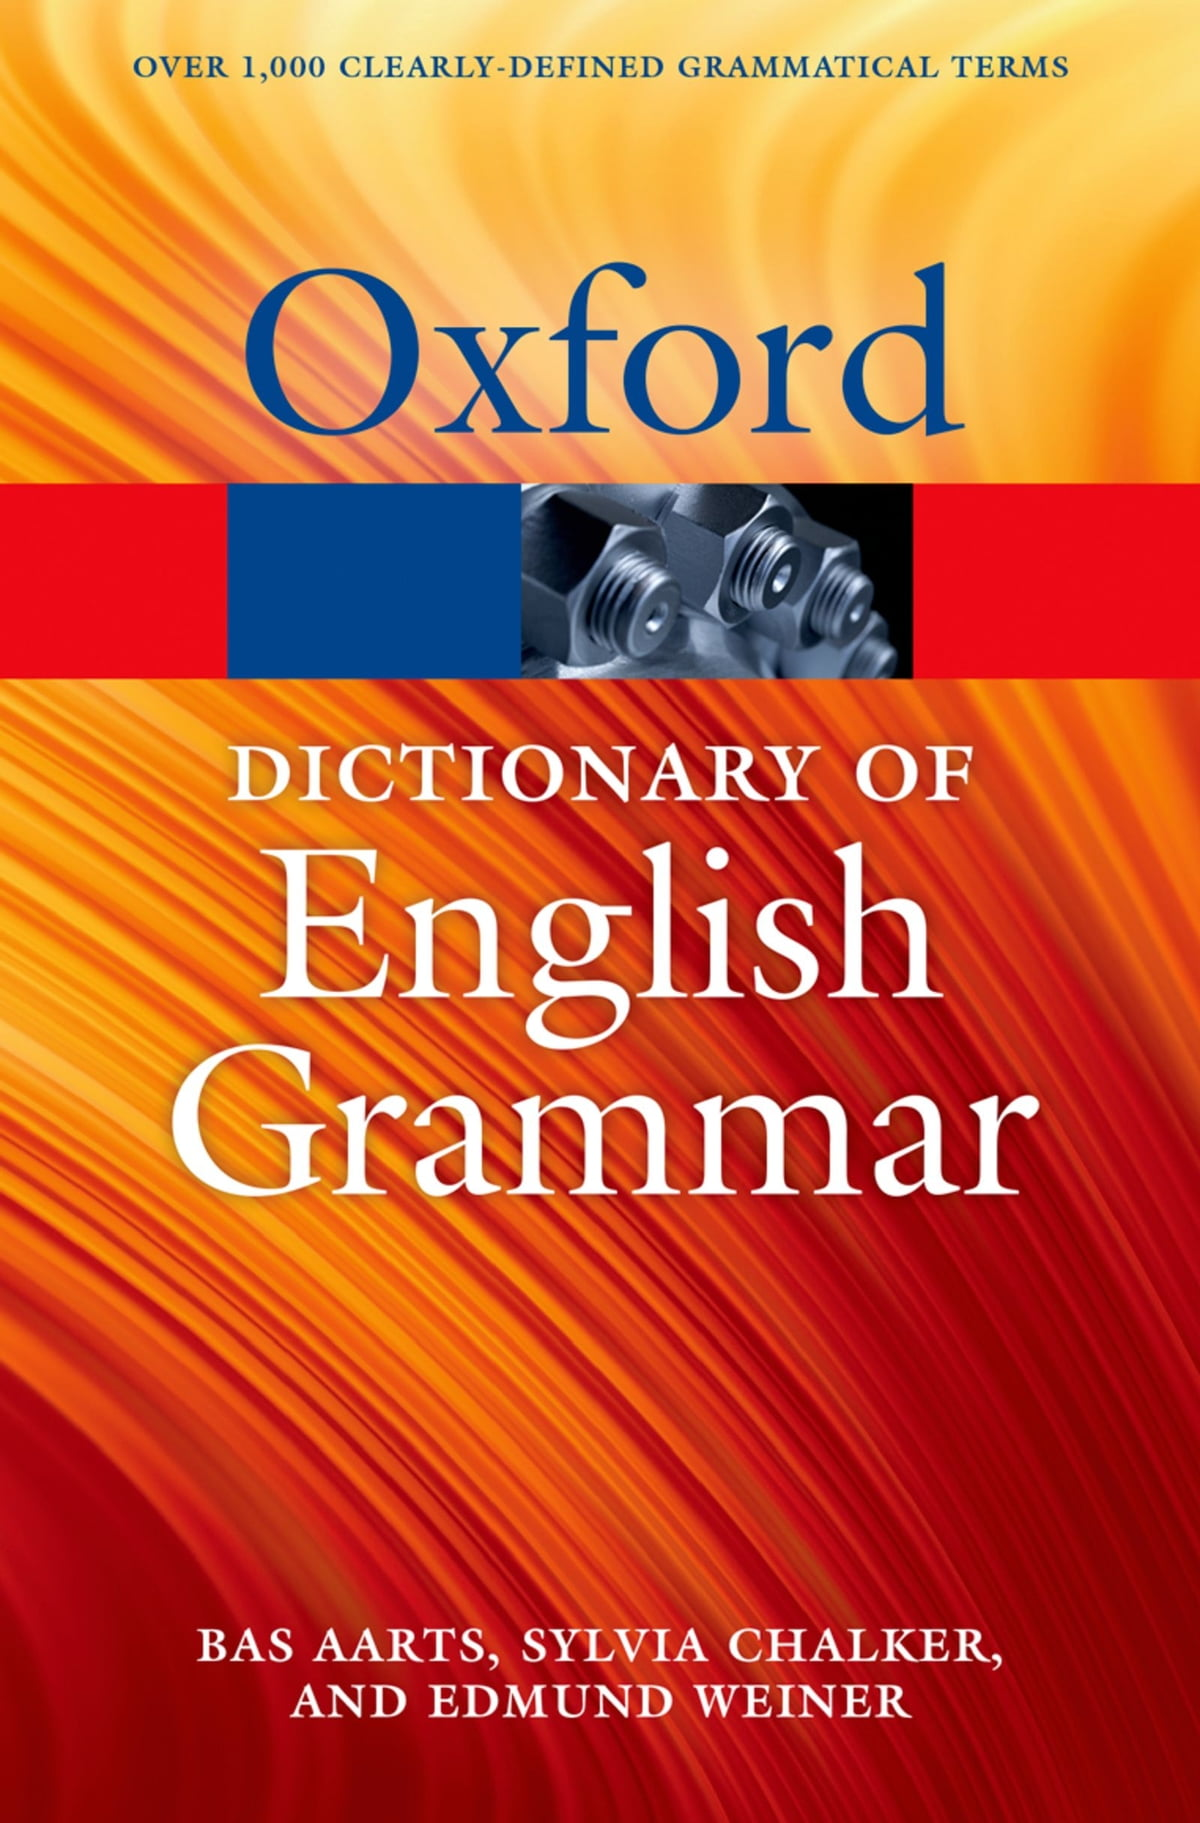 oxford english grammar ebook free download